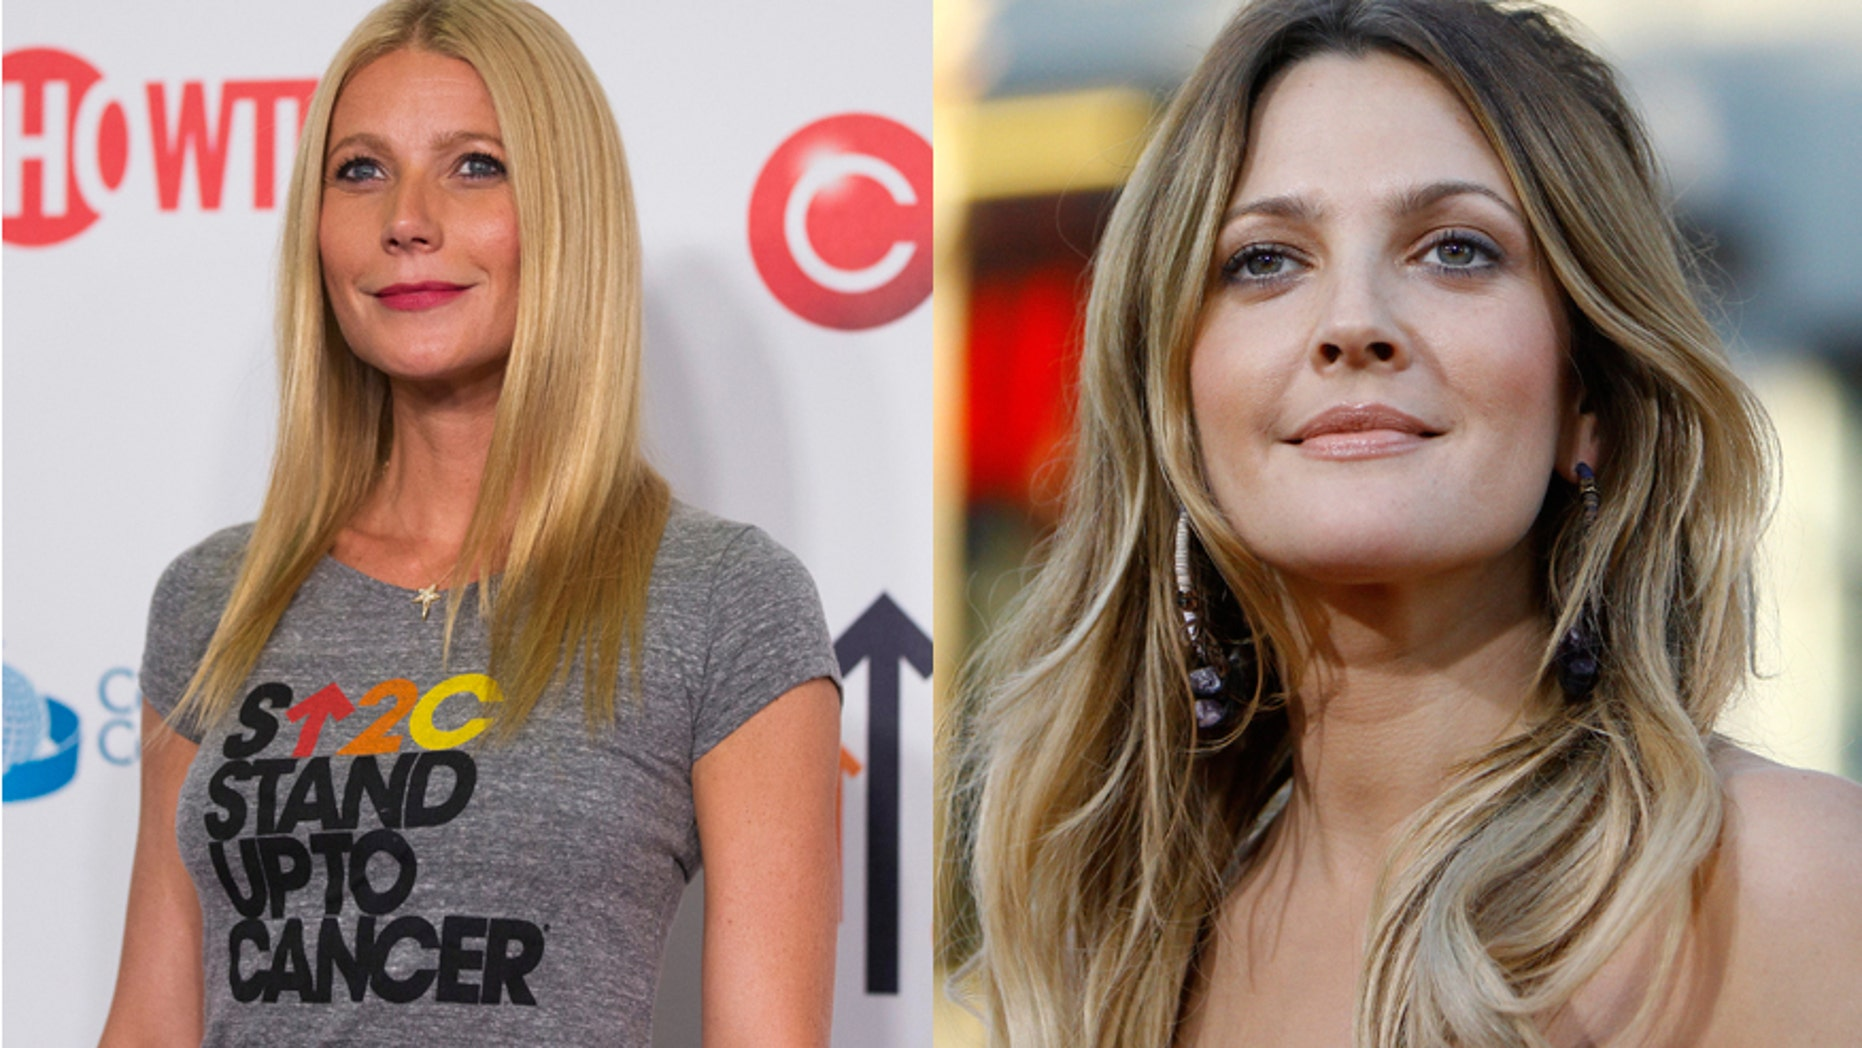 Actresses Gwynth Paltrow (left) and Drew Barrymore.